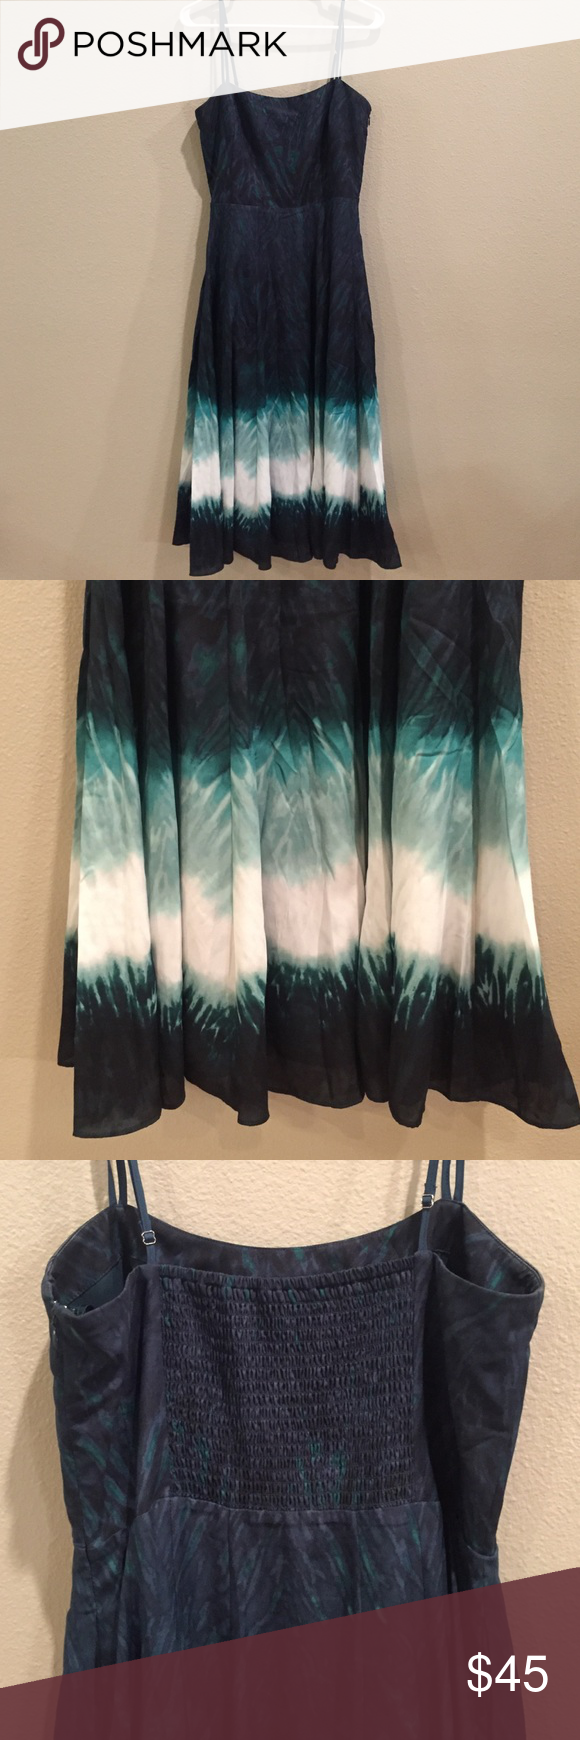 WHBM Spaghetti Strap Midi Dress; 8 White House Black Market Spaghetti Strap Midi Dress; Size 8.  Material is silky and flowy.  Colors are dark green, turquoise, light green, and white.  Worn once and in Like New Condition. White House Black Market Dresses